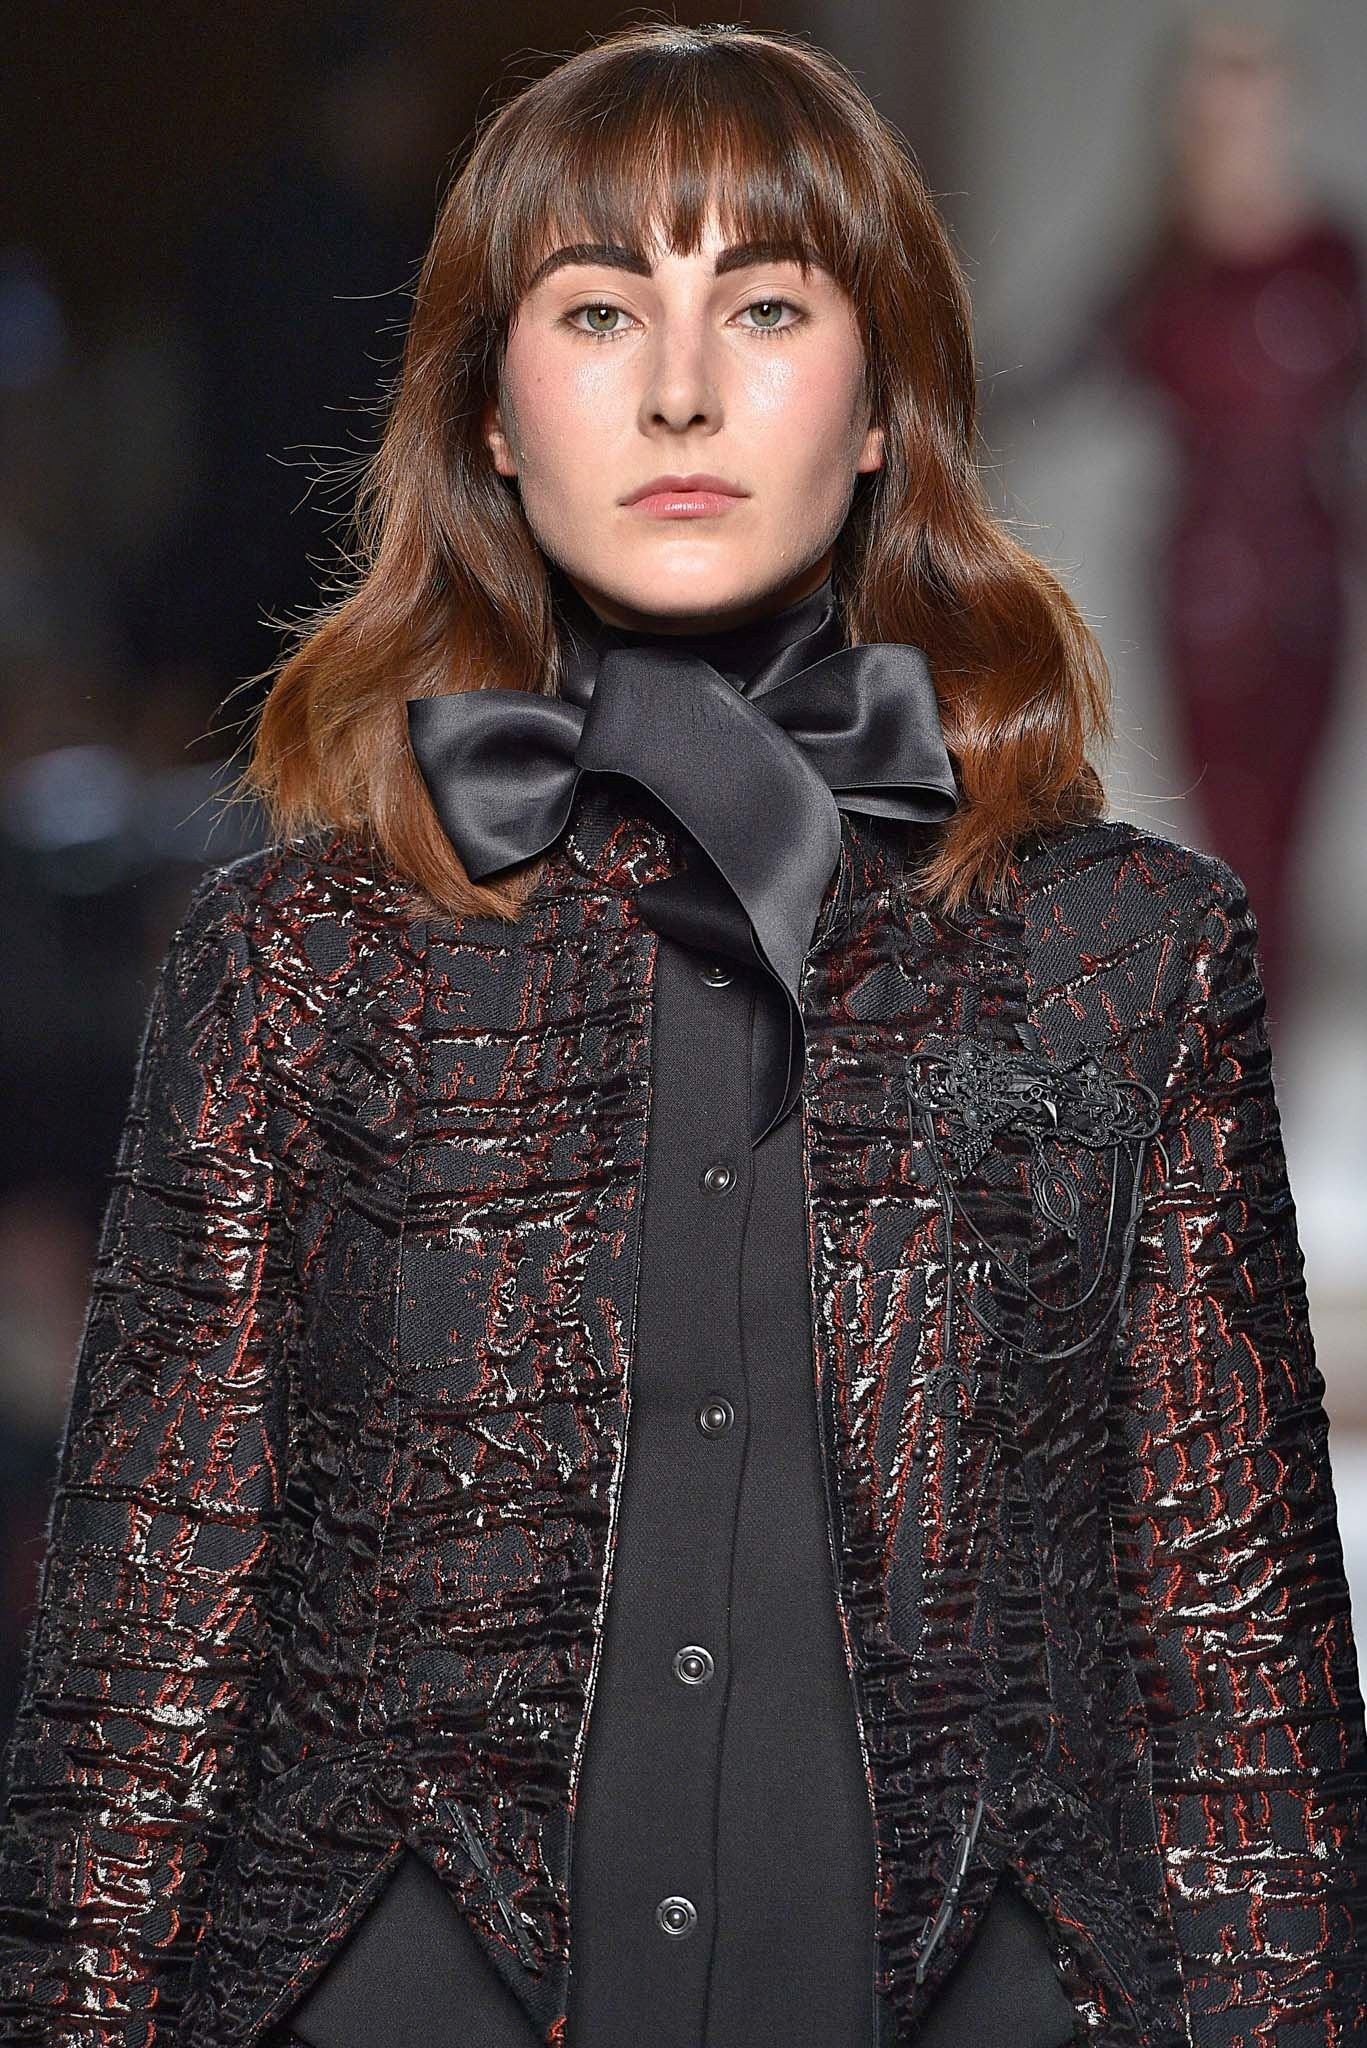 Model with chocolate brown shoulder-length hair with bangs wearing a jacket